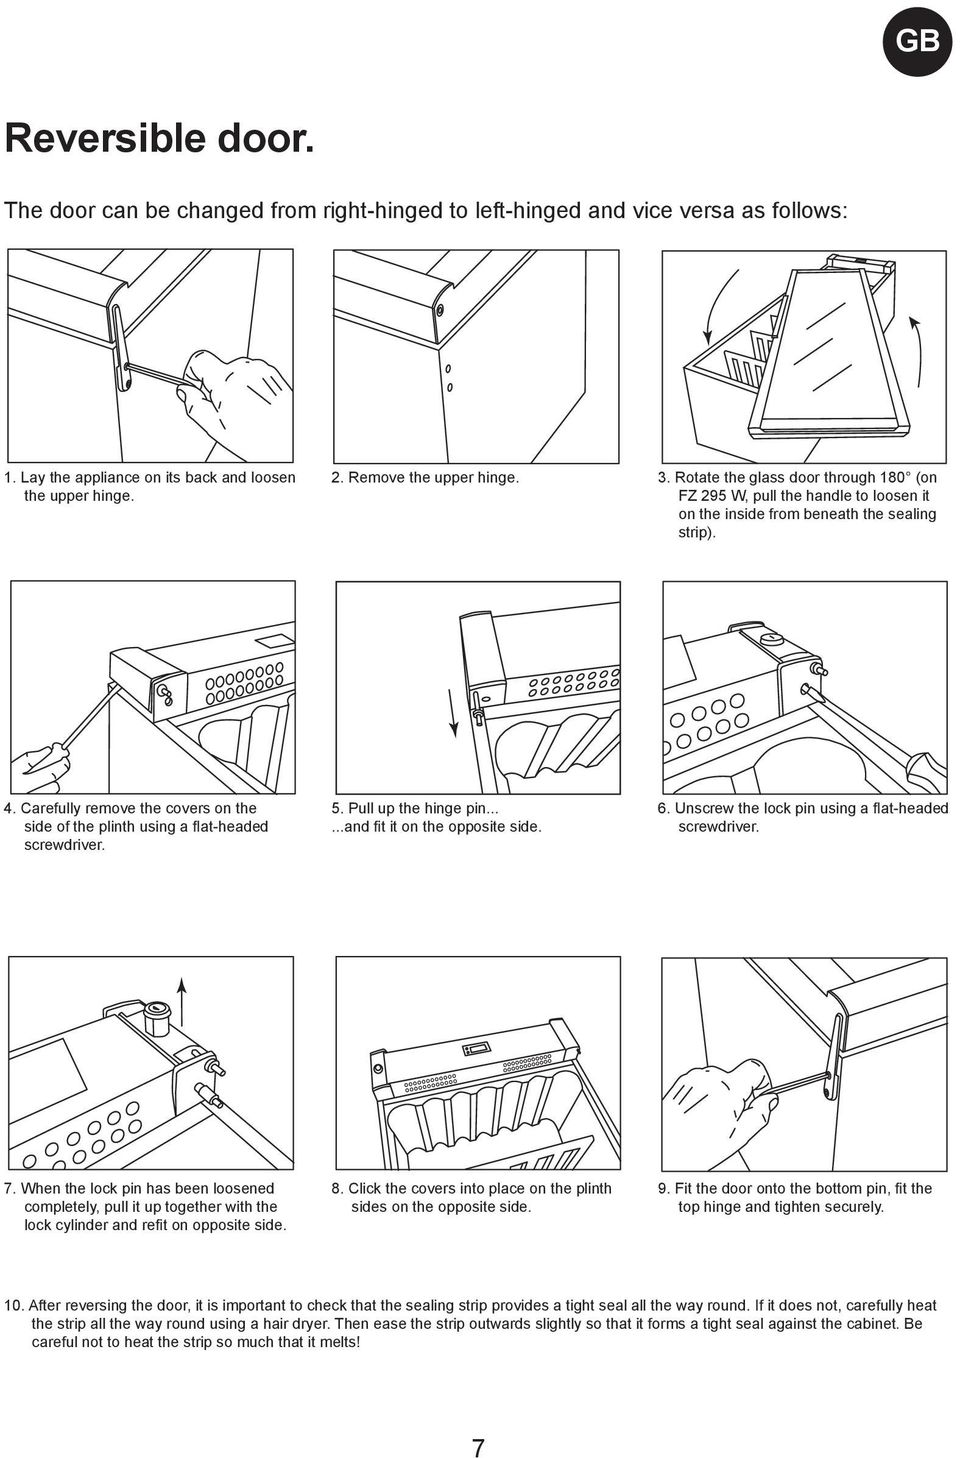 Carefully remove the covers on the side of the plinth using a flat-headed screwdriver. 5. Pull up the hinge pin......and fit it on the opposite side. 6.